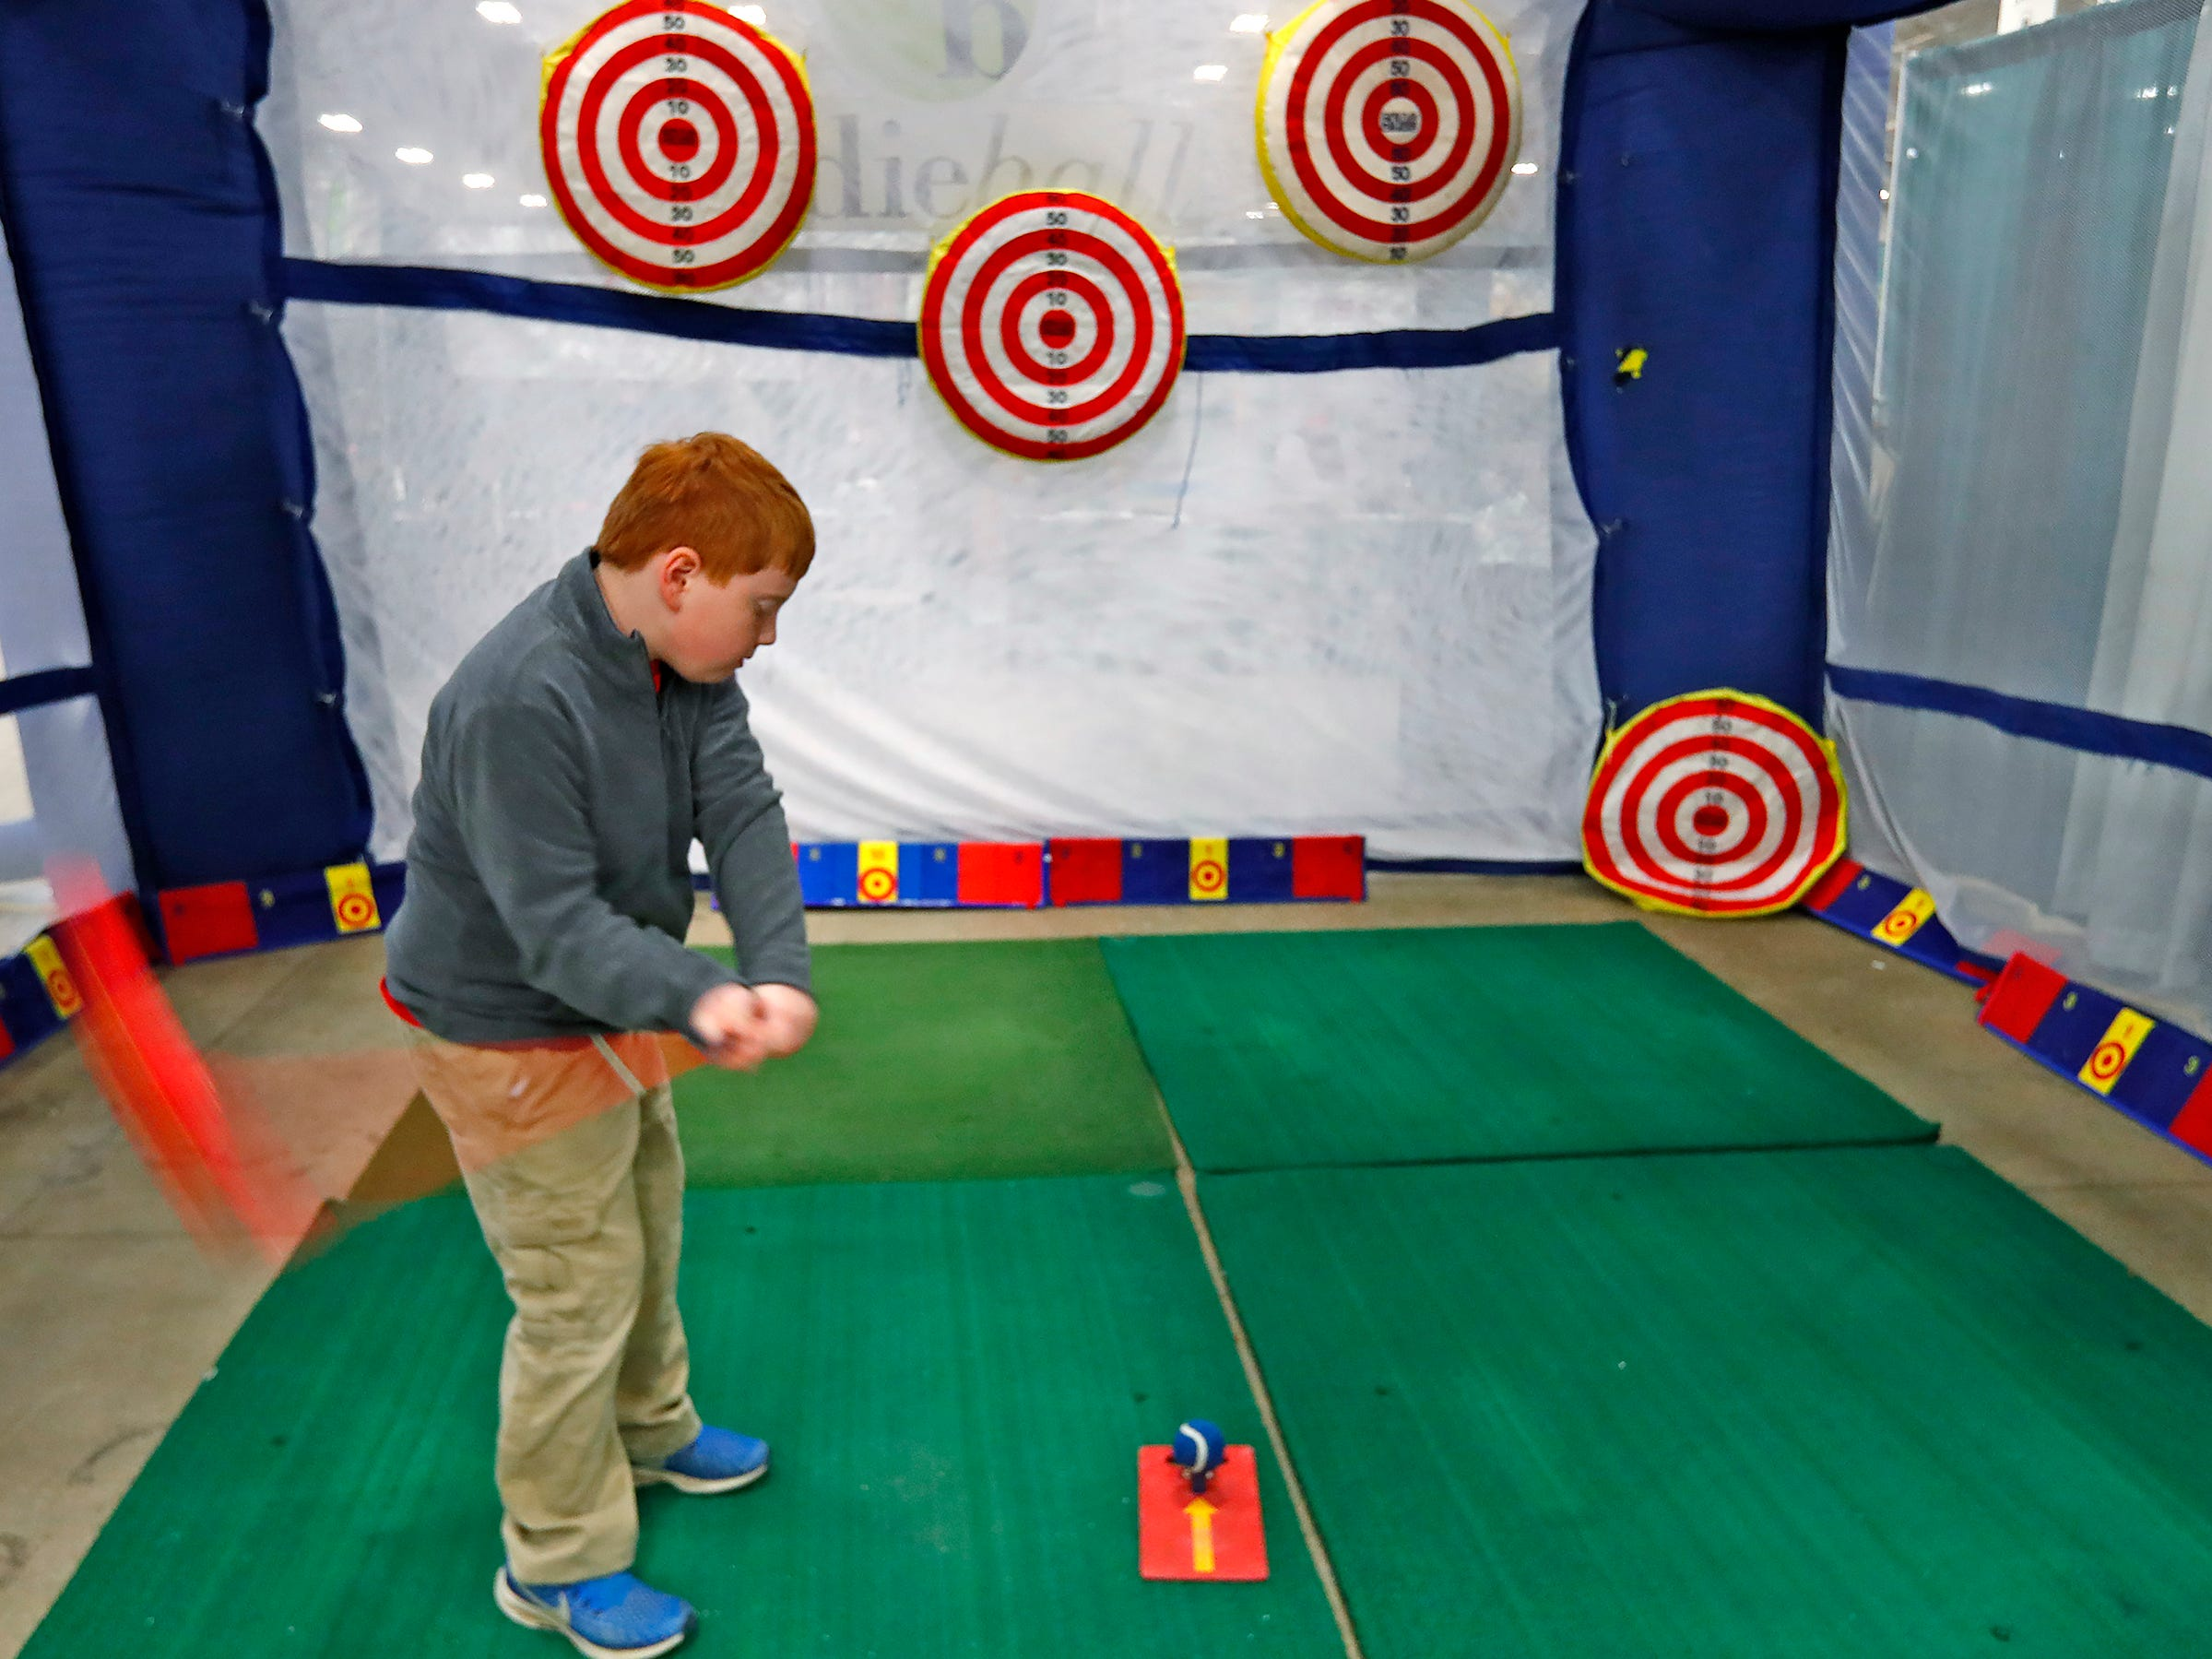 Edison Armbrester tests his golf swing during the Indy Golf Expo at the Indiana State Fairgrounds, Sunday, Jan. 20, 2019.